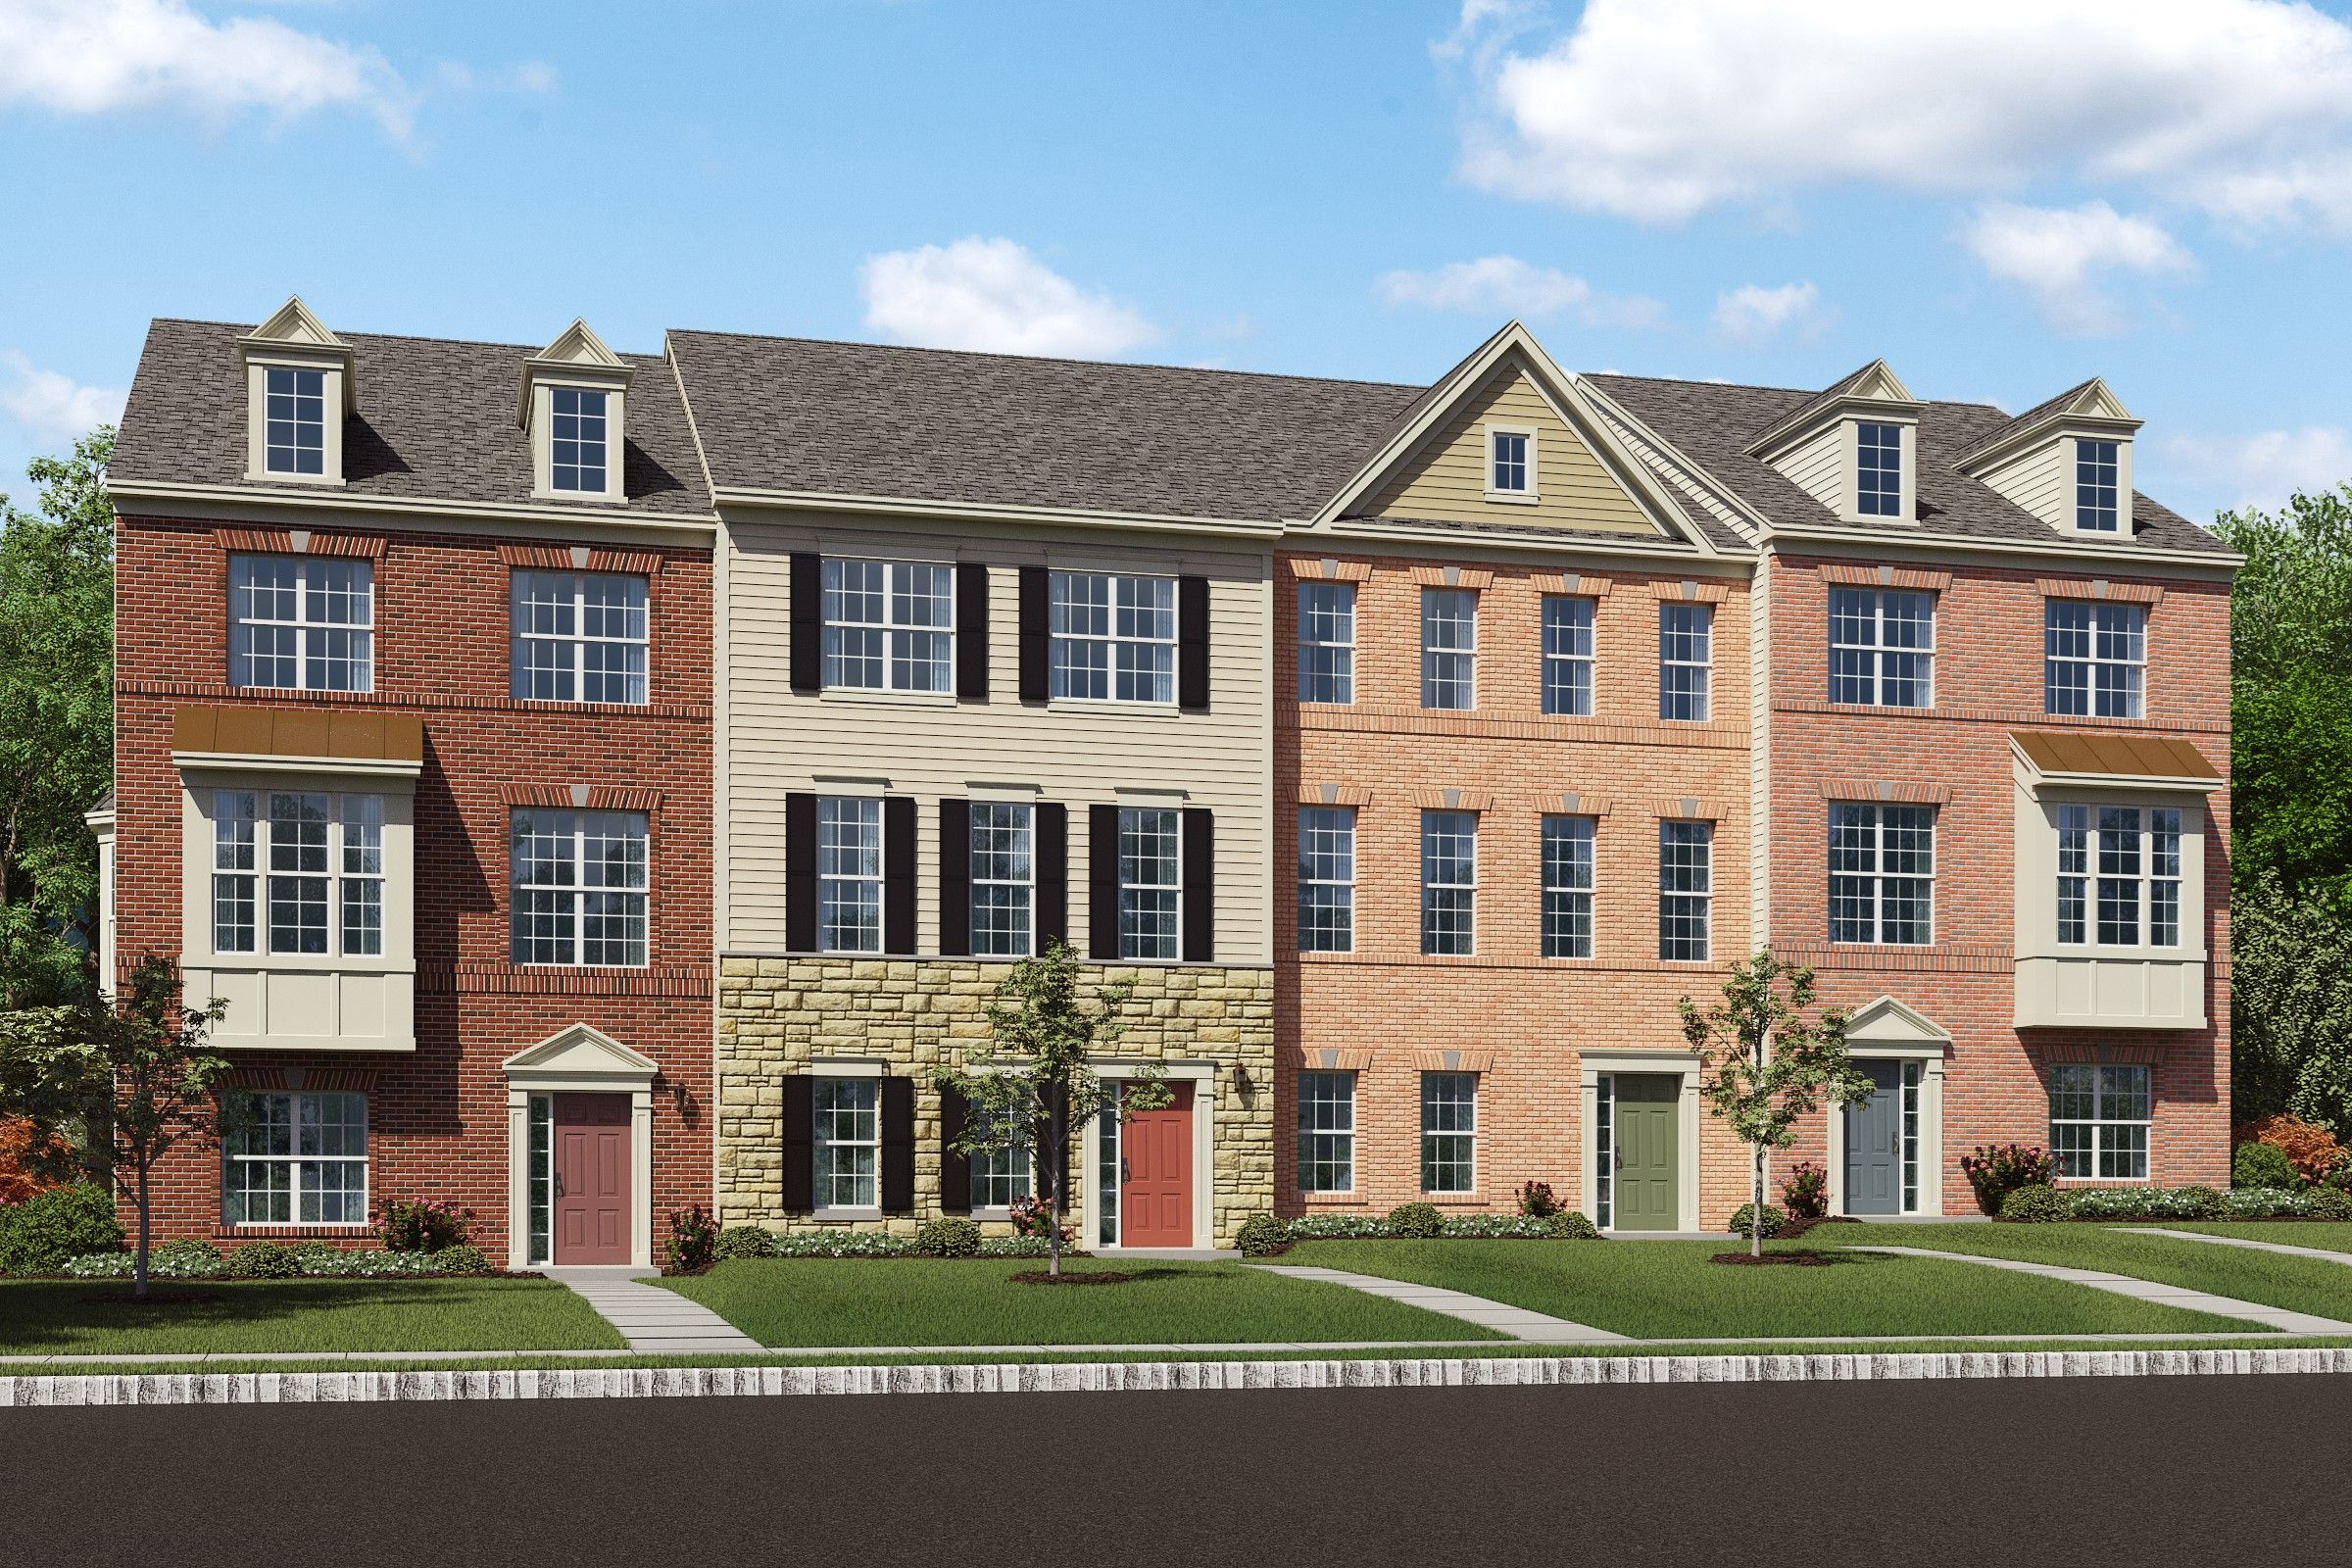 Multi Family for Sale at Montgomery 2106 St Joseph Drive, Homesite 4d Mitchellville, Maryland 20721 United States